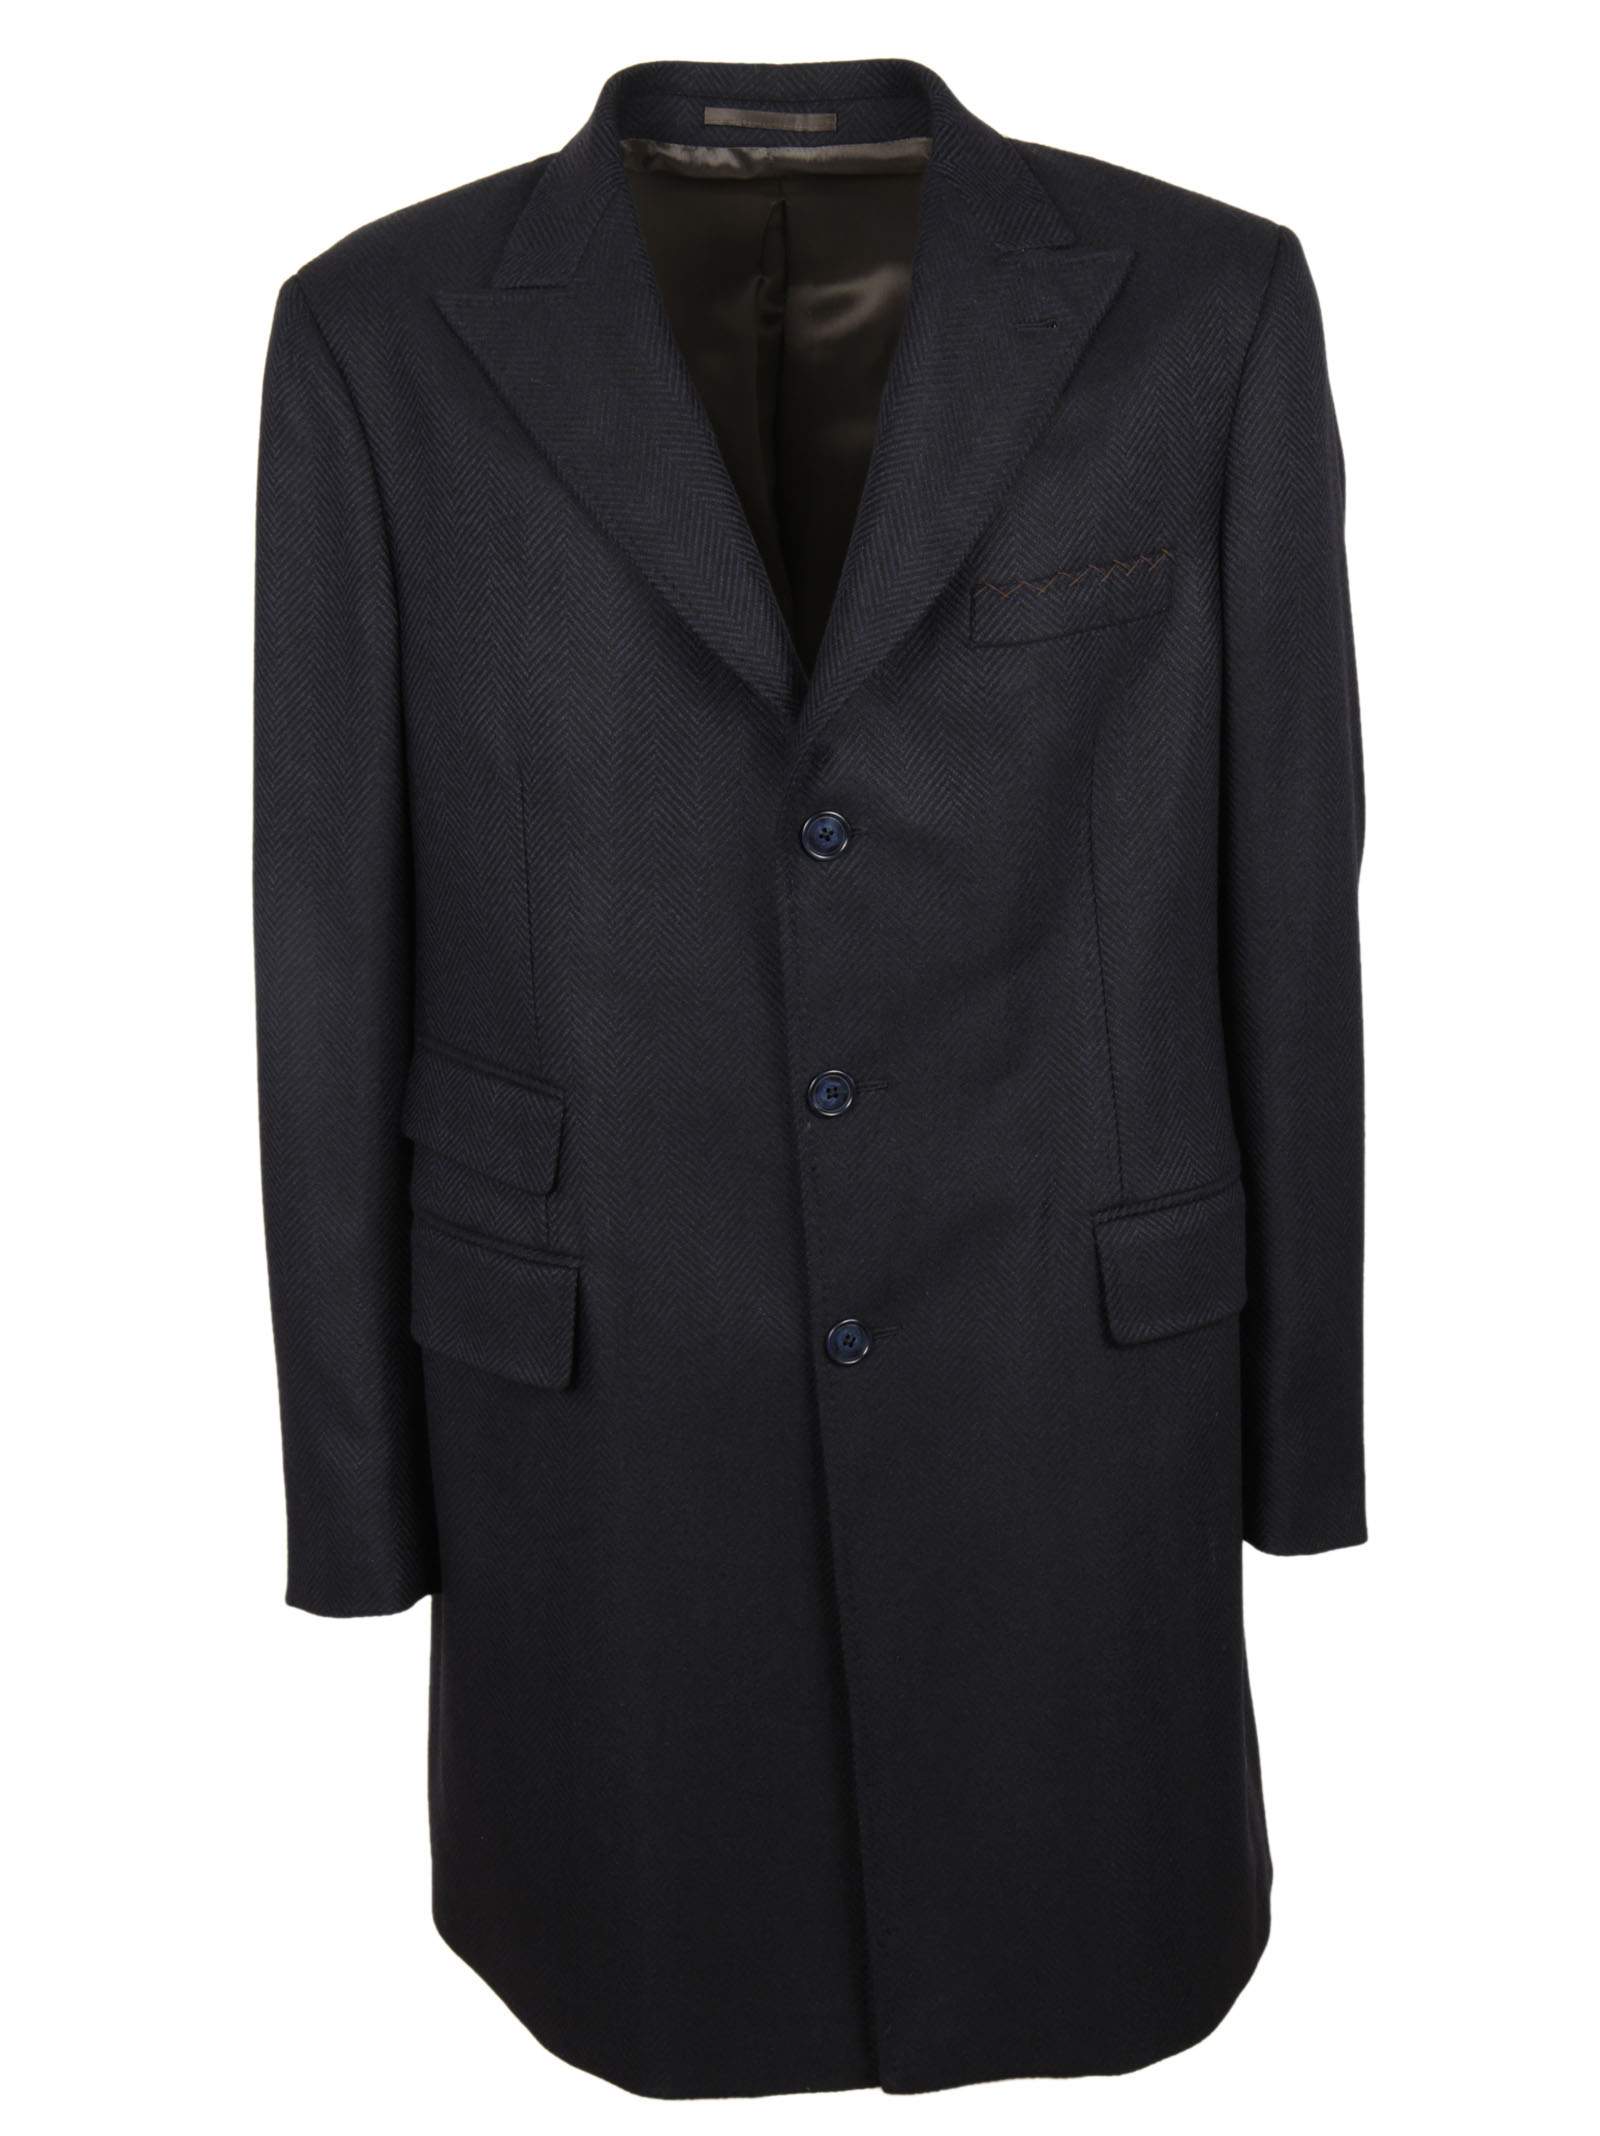 Doriani Doriani Notched Lapel Coat